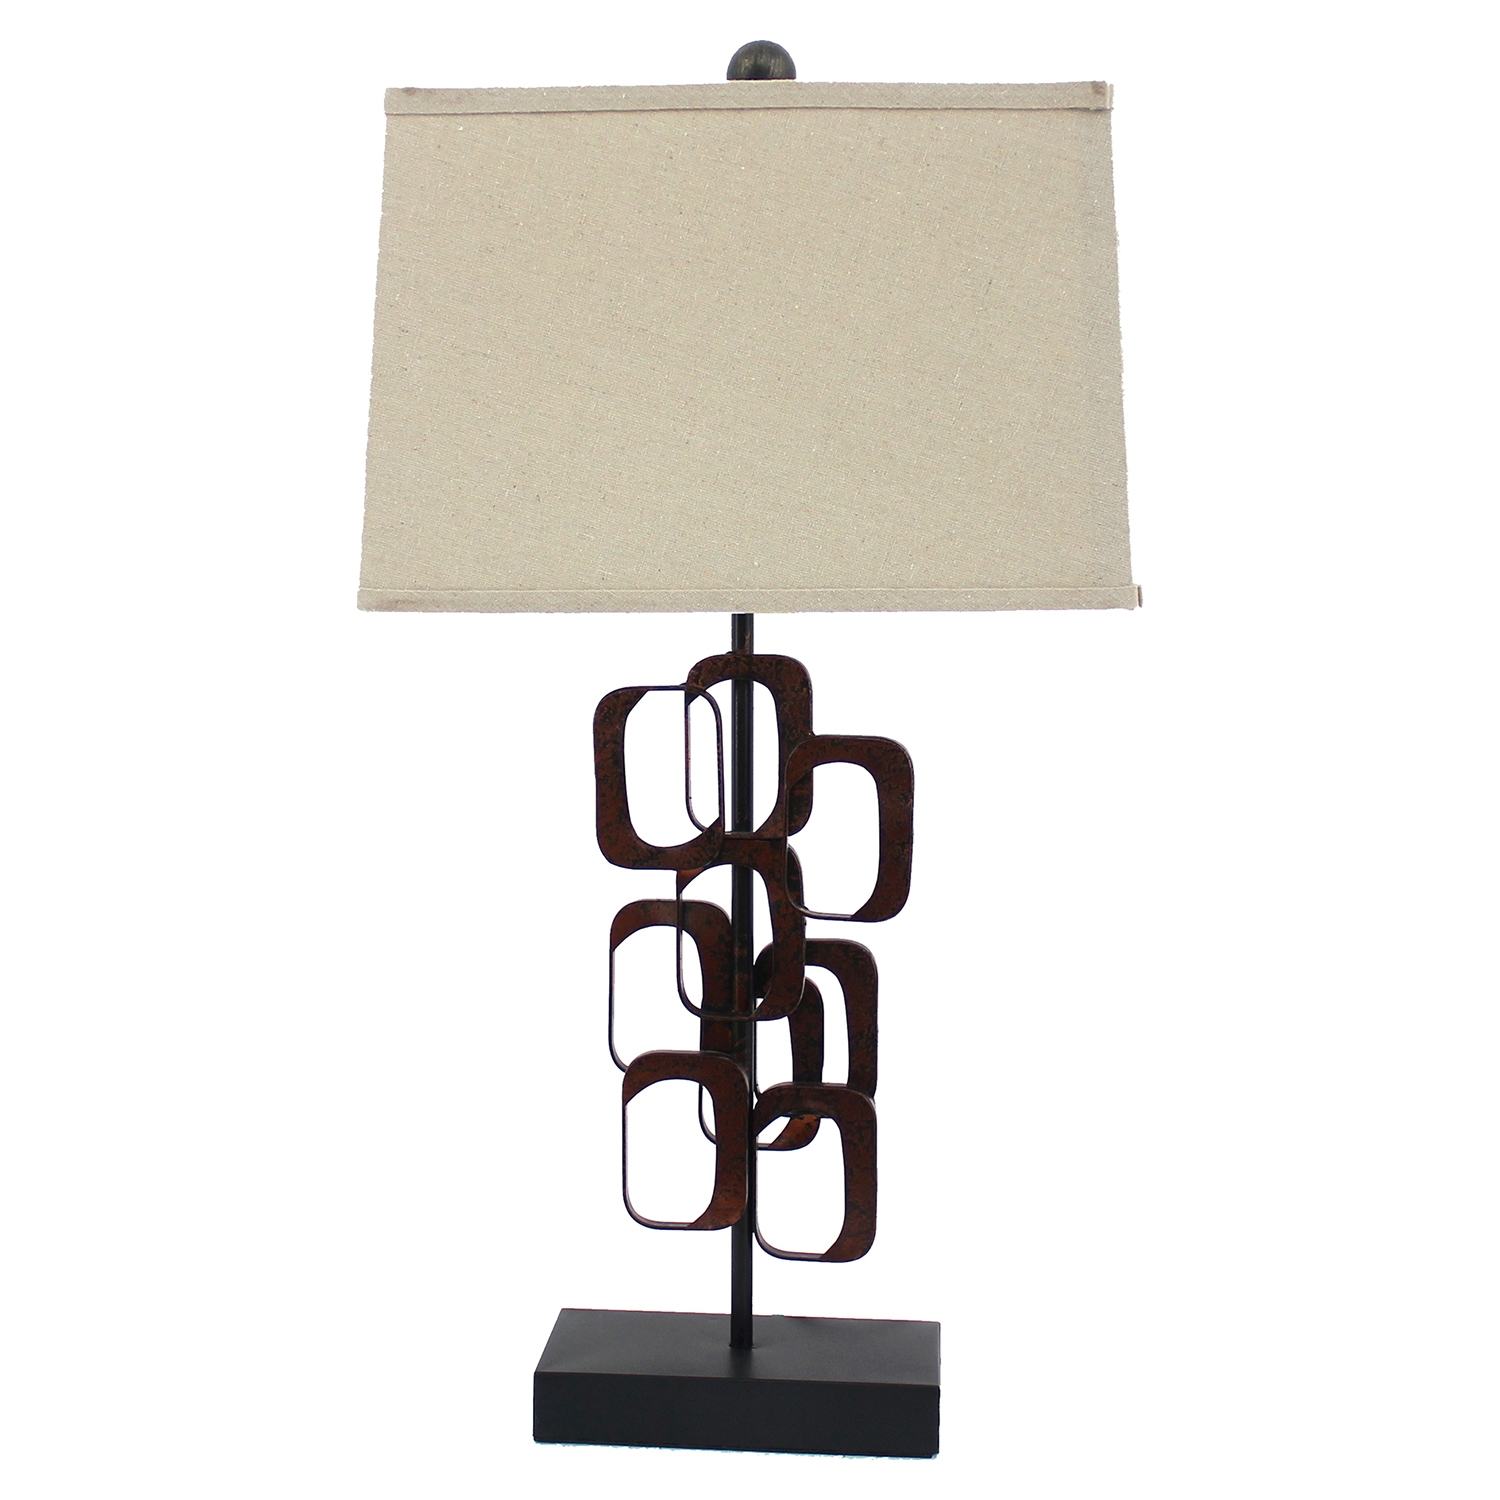 Table Lamp with Drum Shade (Set of 2) - TETN-TL-014